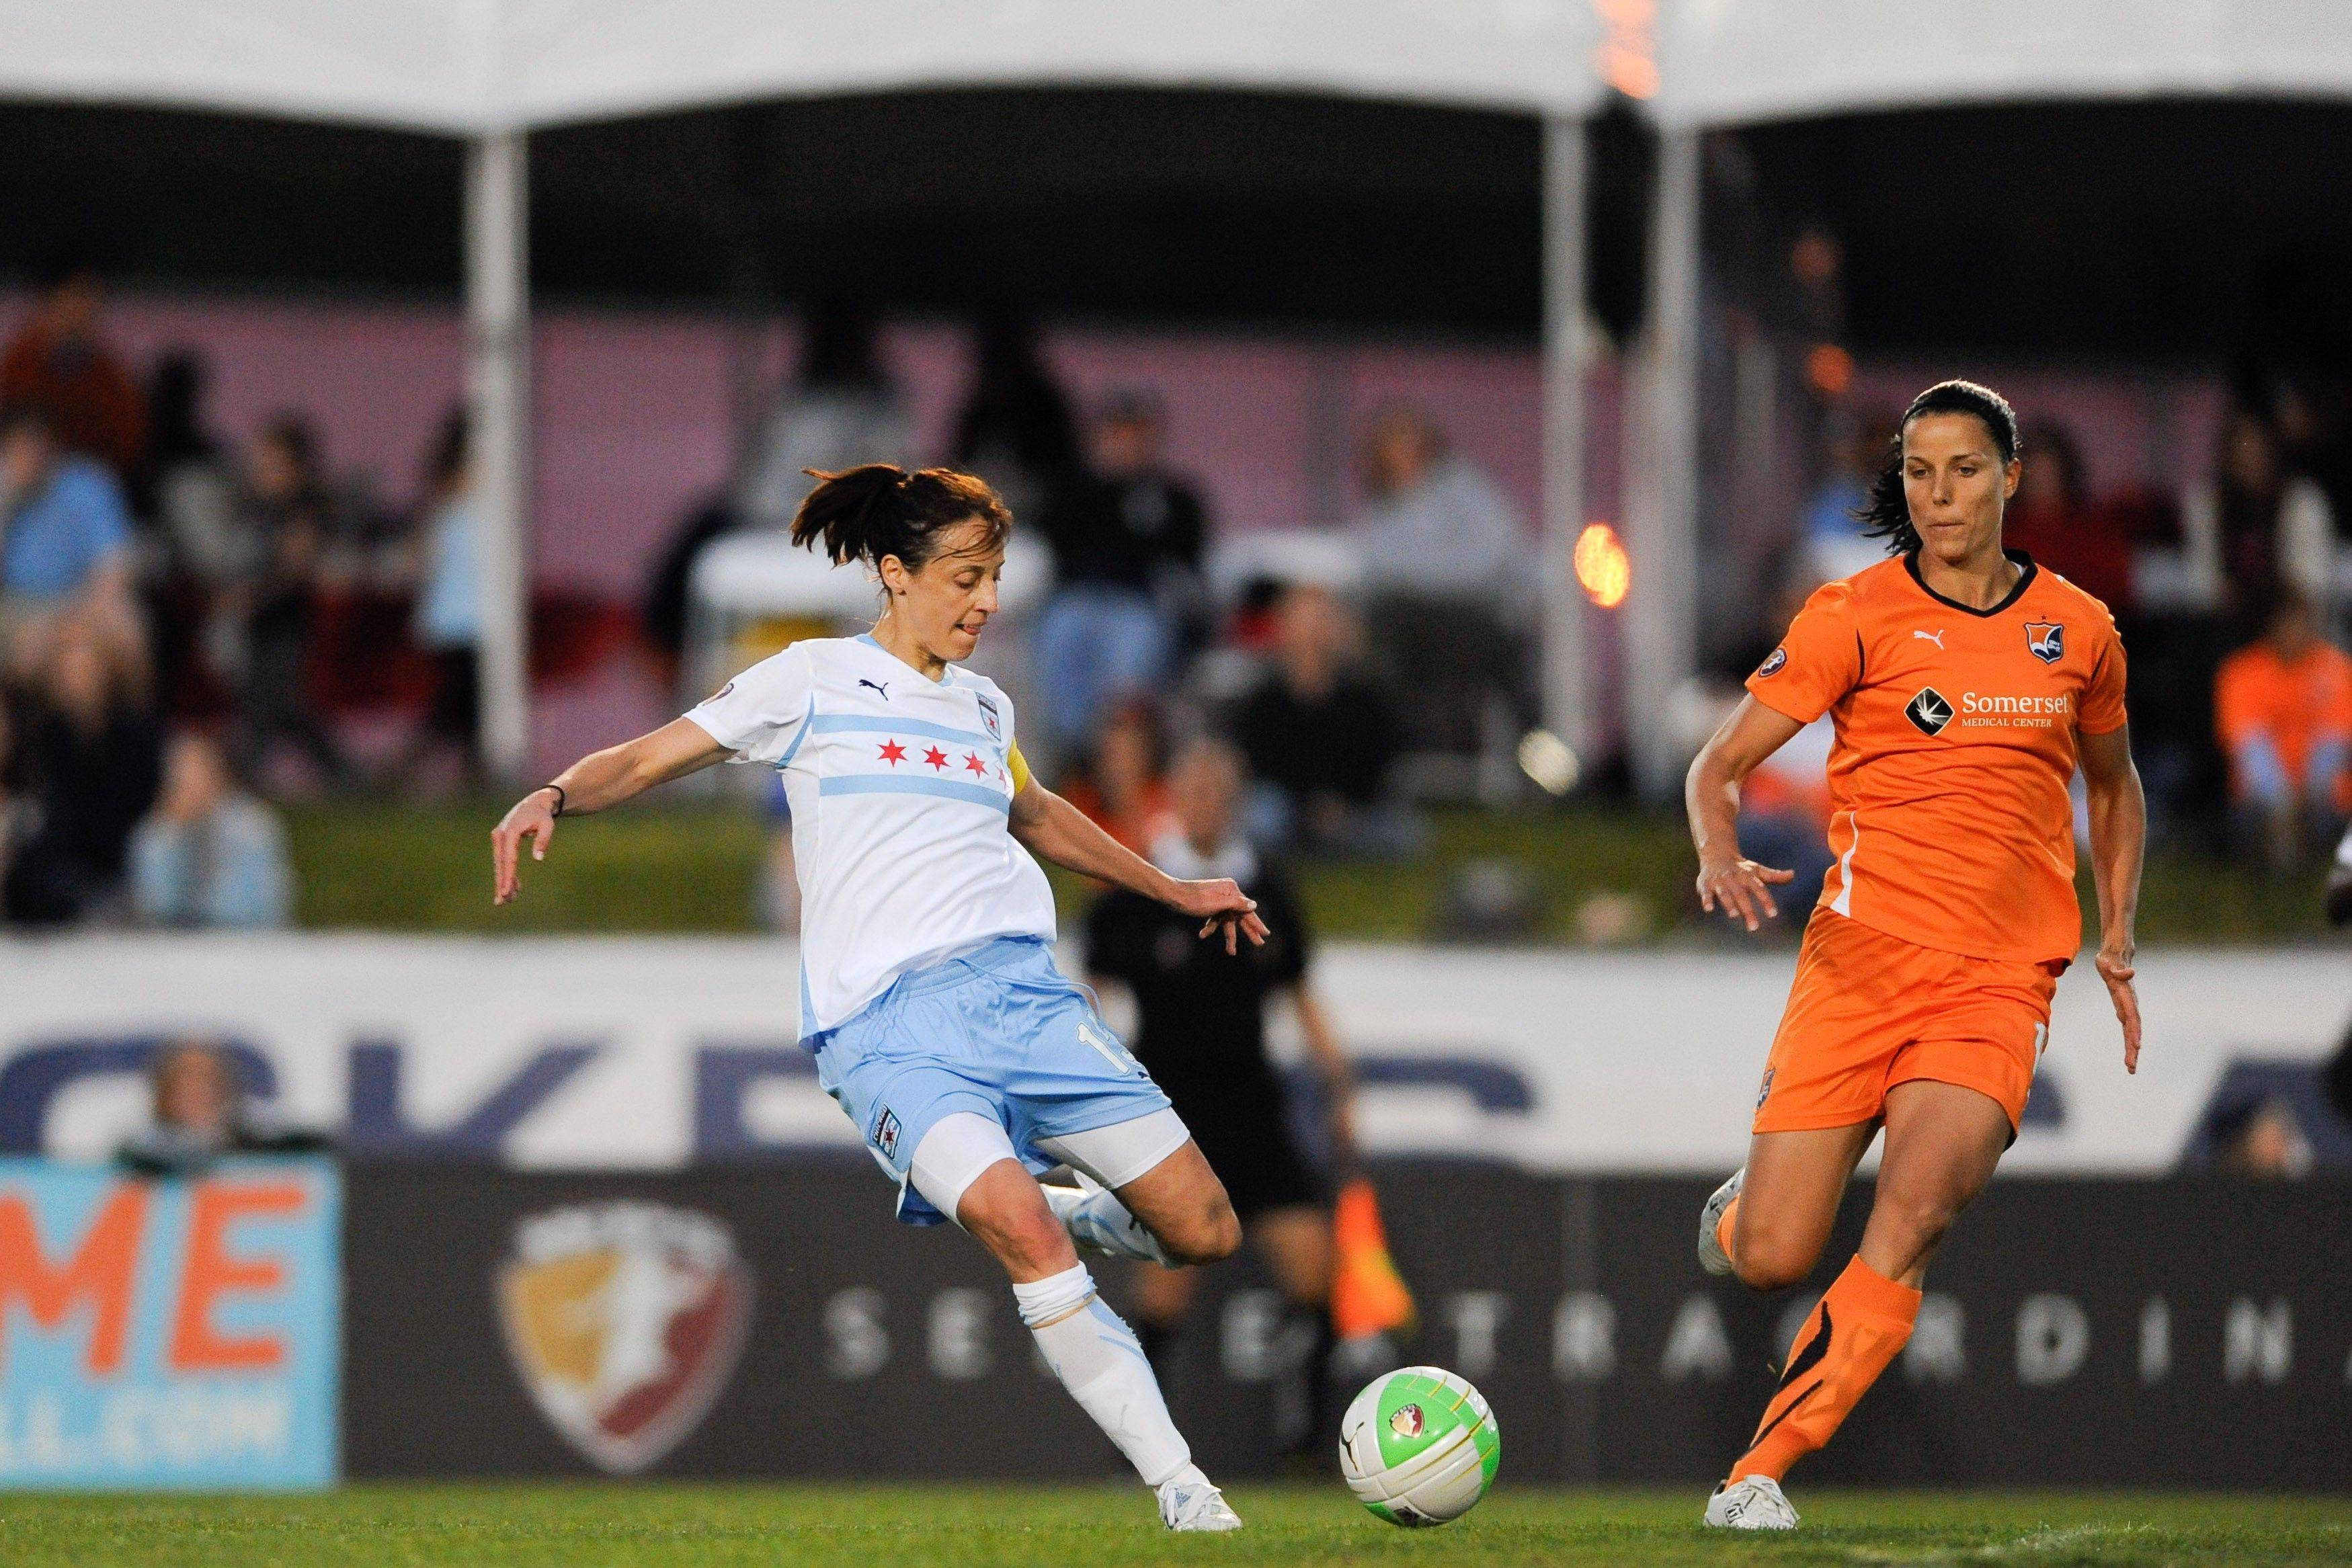 The owners of the Chicago Red Stars are confident they'll have investors in place by the Dec. 15 deadline to remain part of Women's Professional Soccer for the 2011 season.